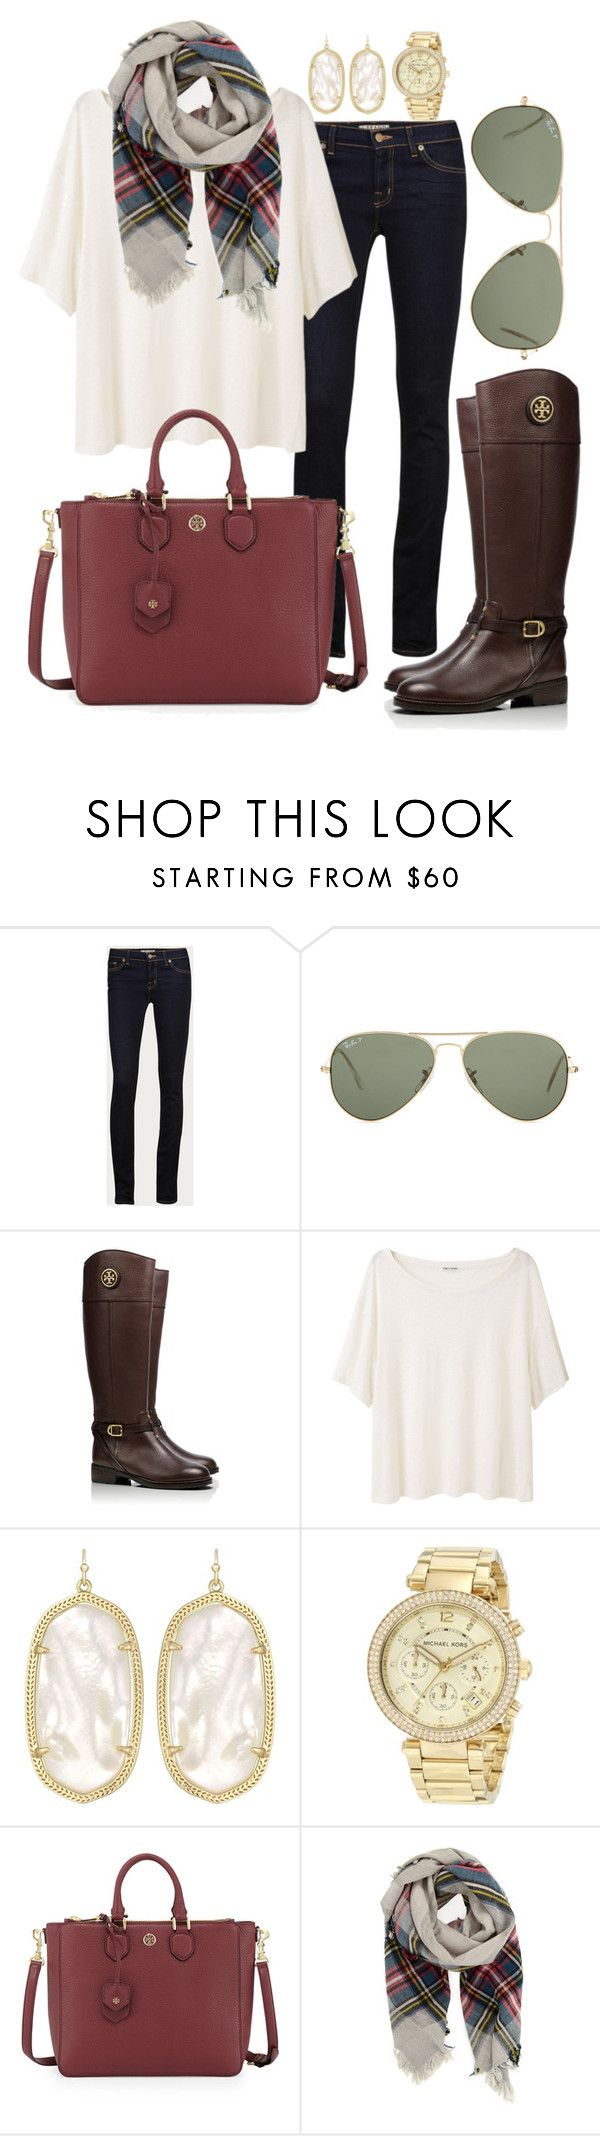 """""""Fall hues"""" by pretty-and-preppy ❤ liked on Polyvore featuring J Brand, Ray-Ban, Tory Burch, Acne Studios, Kendra Scott, Michael Kors and Forte Forte"""